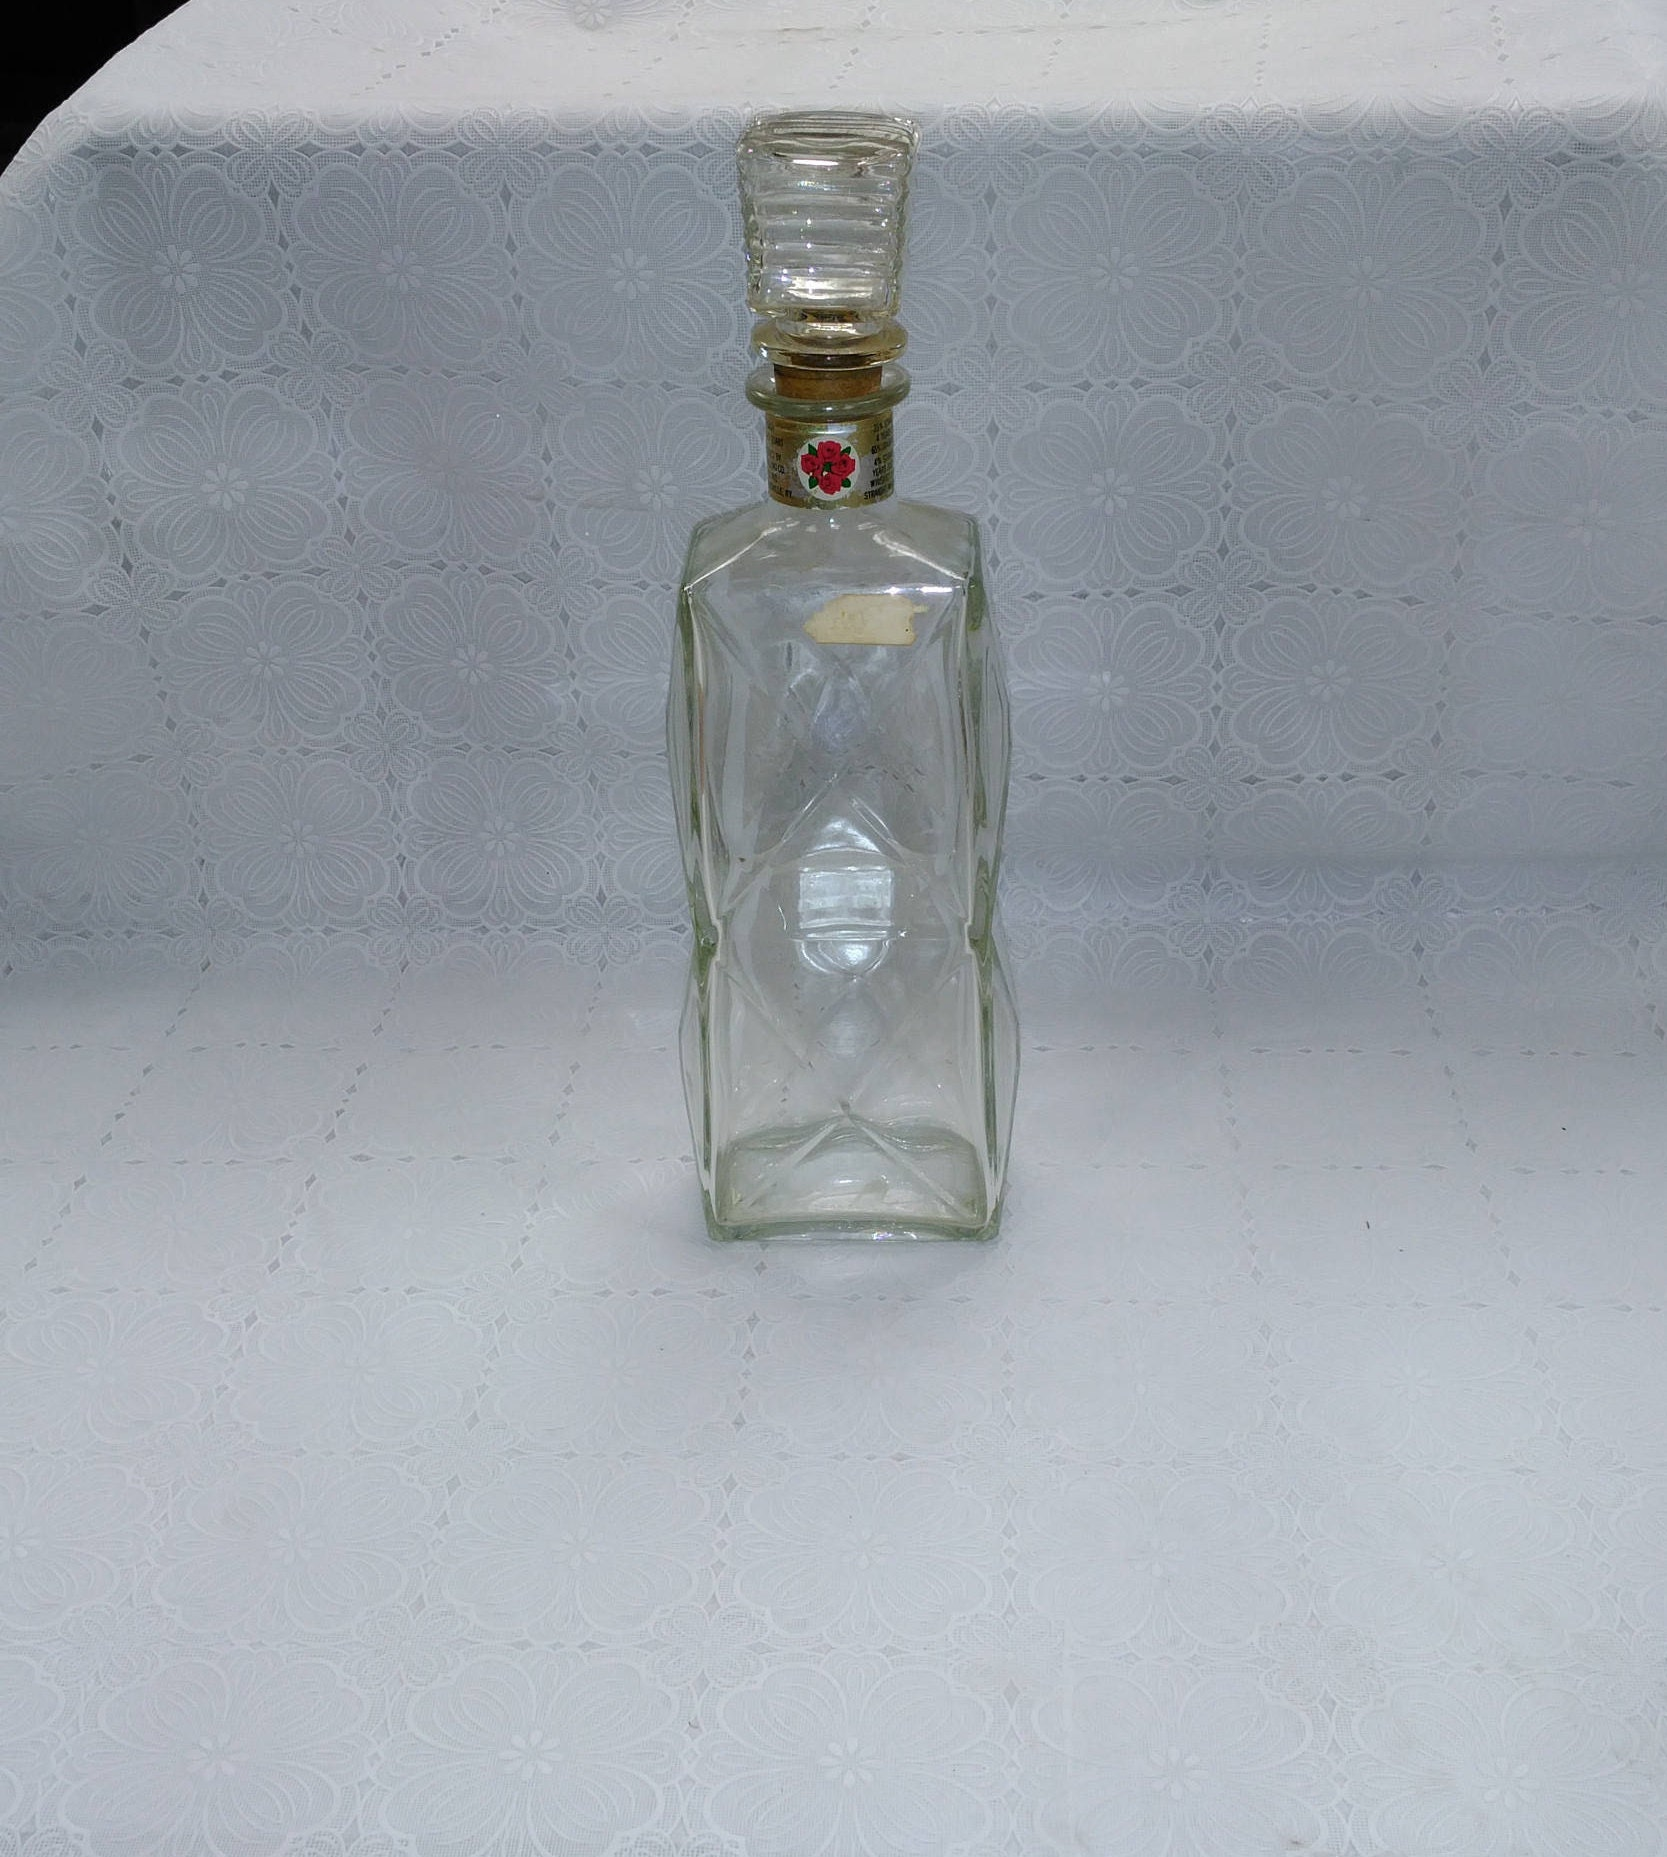 e7fc8a9e62fc Vintage Four Roses Glass Whiskey Decanter Diamond Cut with